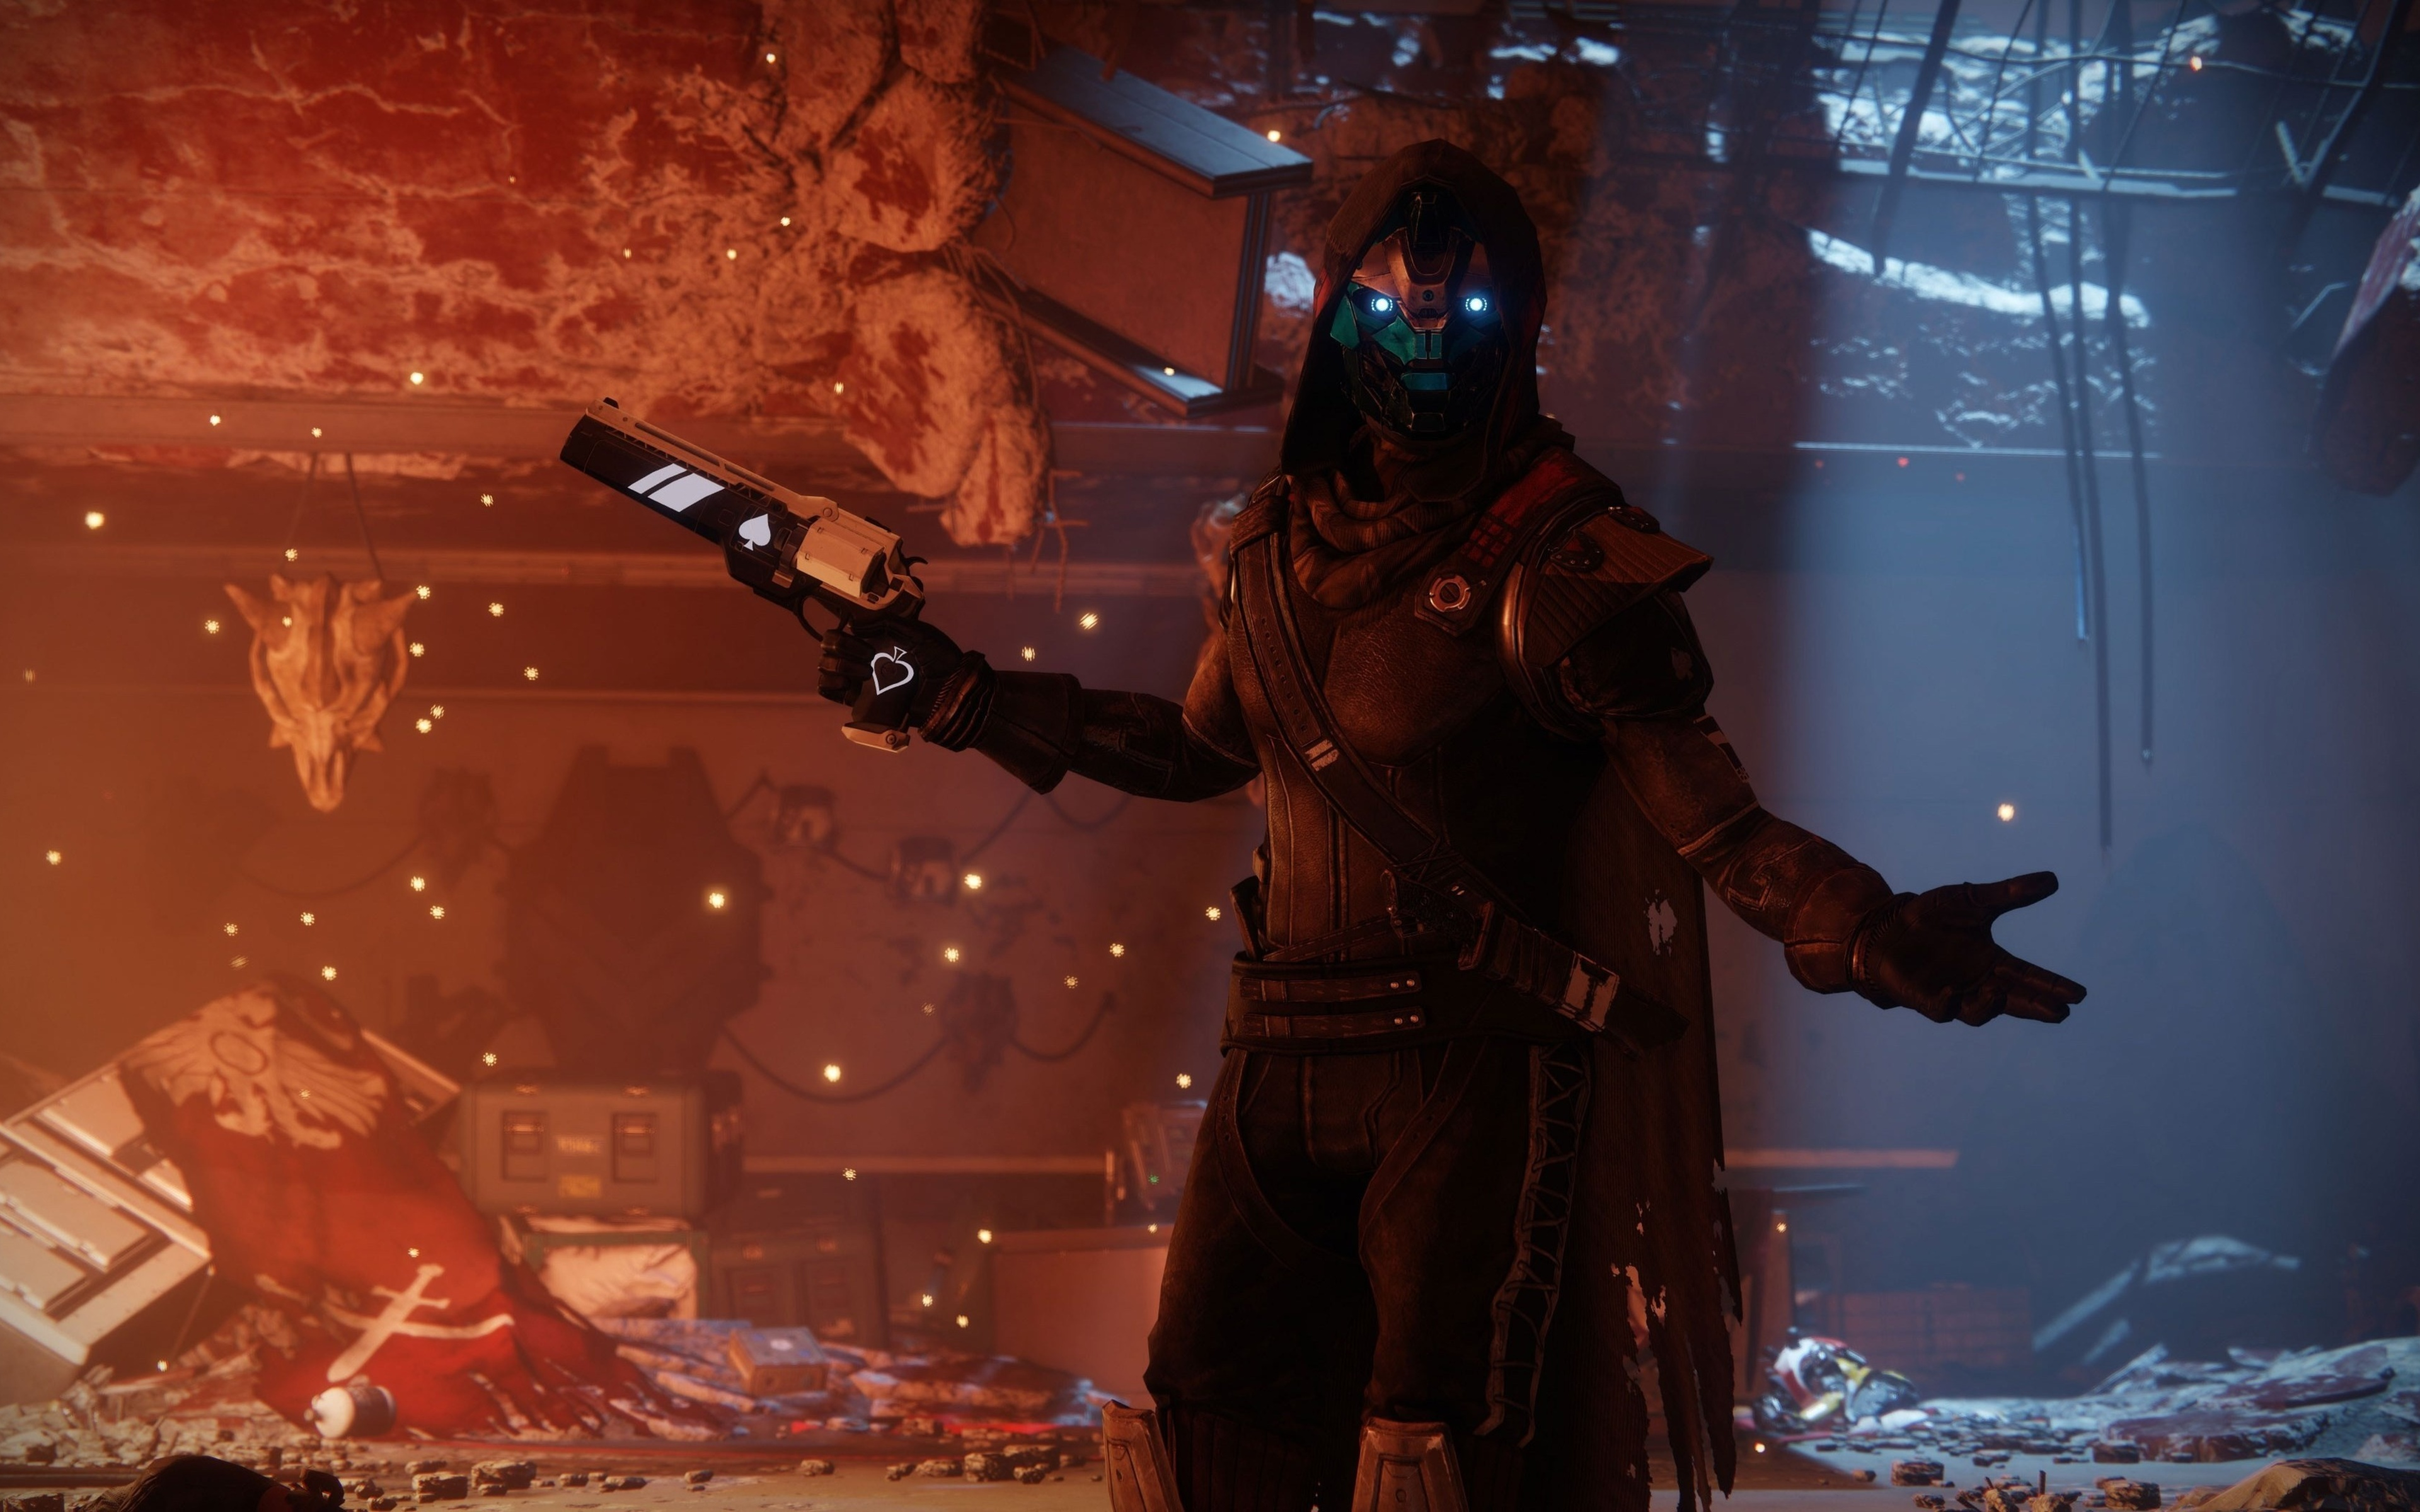 Bungie is nerfing Destiny 2's most popular weapons